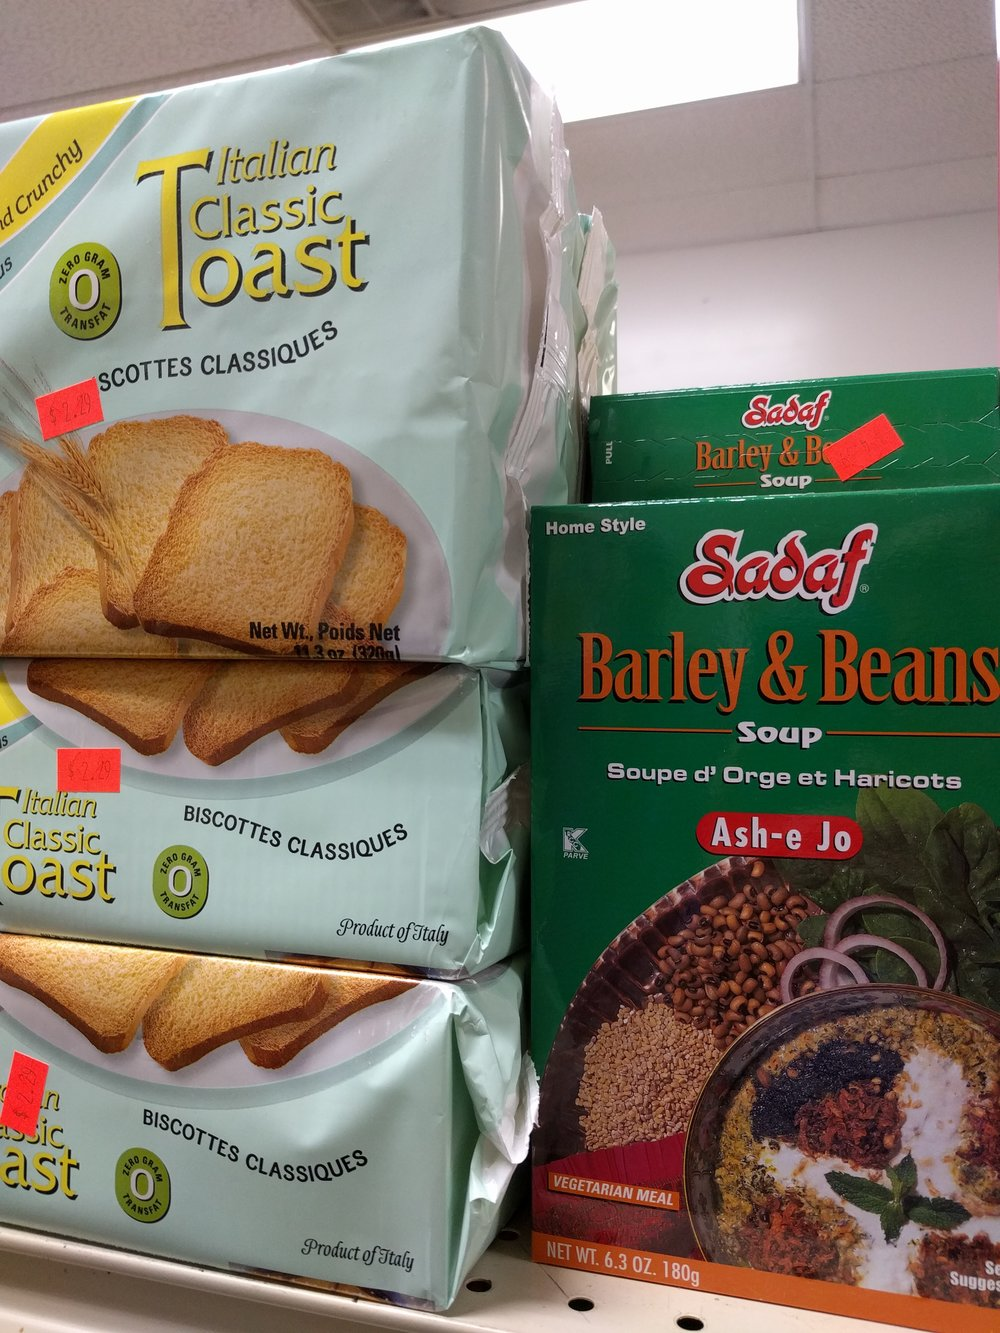 Sadaf-Barley-beans-Pak-Halal-International-Foods-12259-W-87th-St-Pkwy-Lenexa-KS-66215.jpg